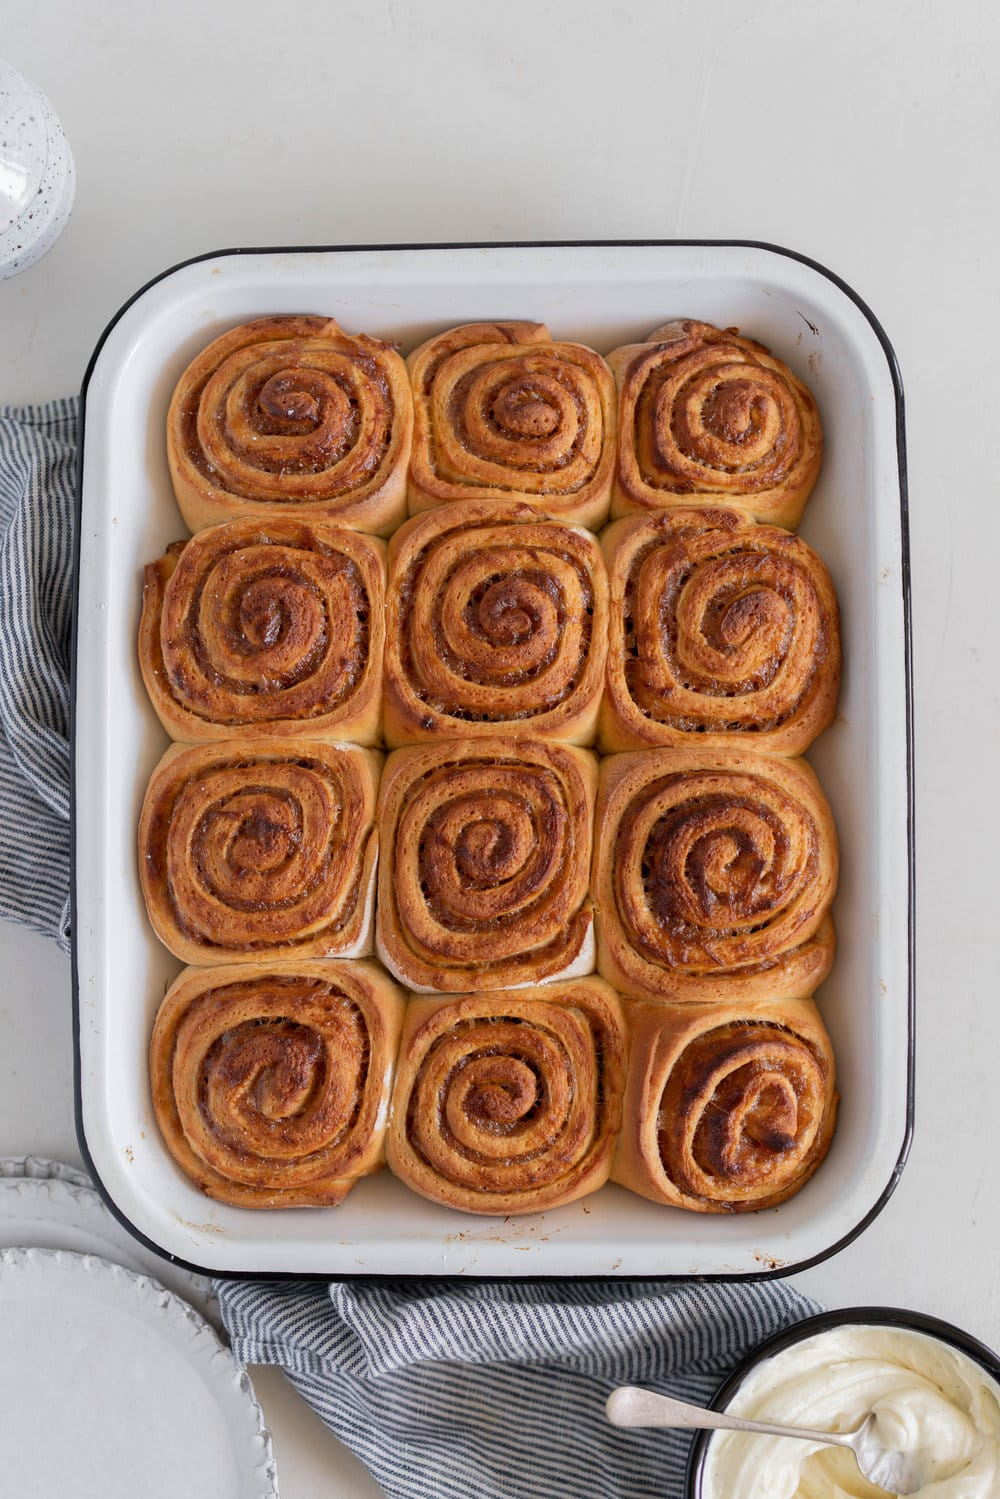 Rhubarb Sticky Buns - Brioche Spiked with vanilla, filled with rhubarb quick jam, and finished with a vanilla bean mascarpone frosting. #stickybuns #rhubarb #vanillabean #cloudykitchen